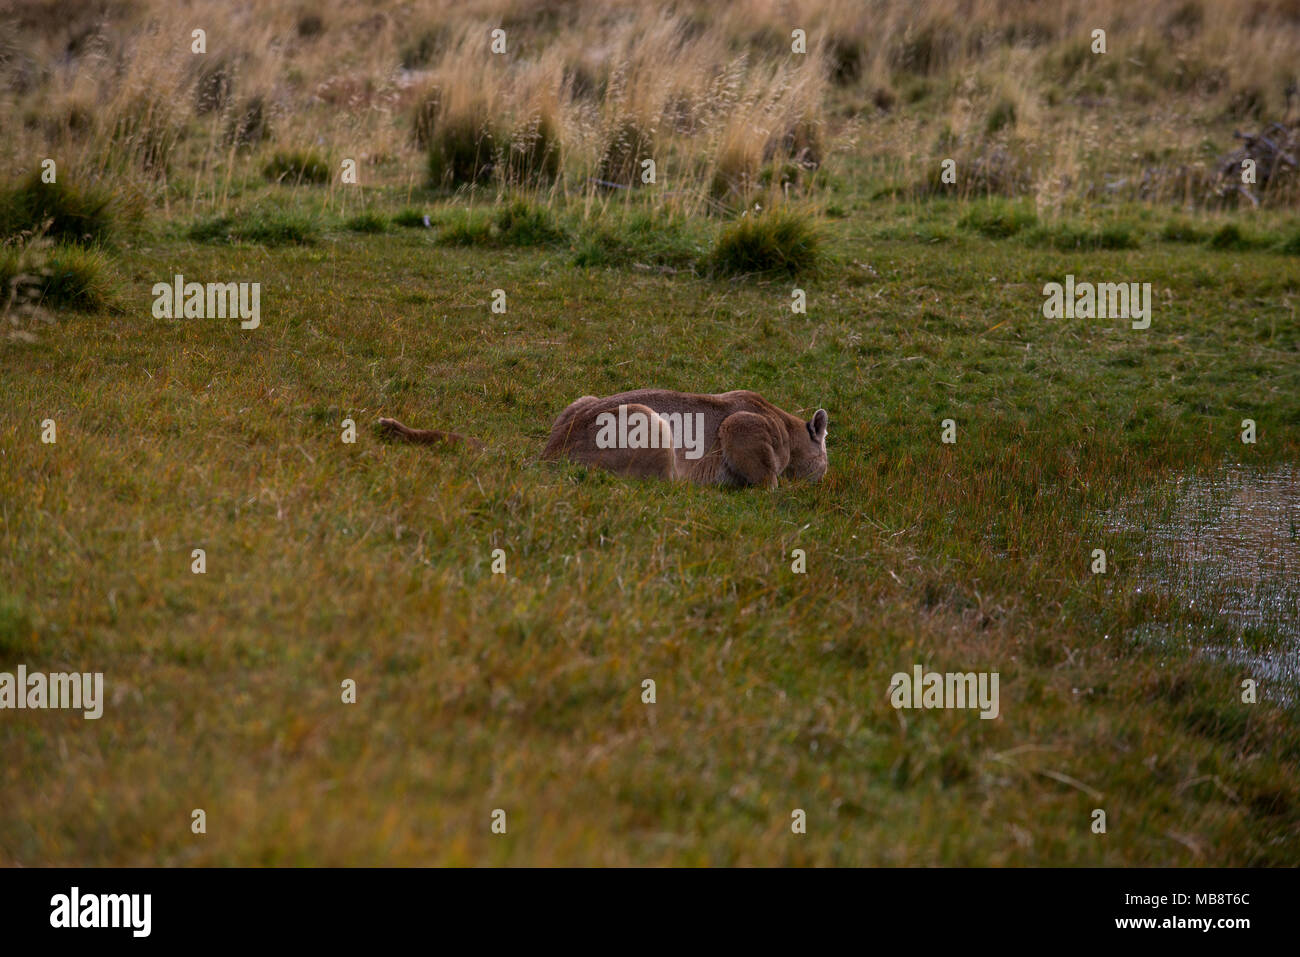 Wild female Patagonian Puma drinking at side of pond - Stock Image